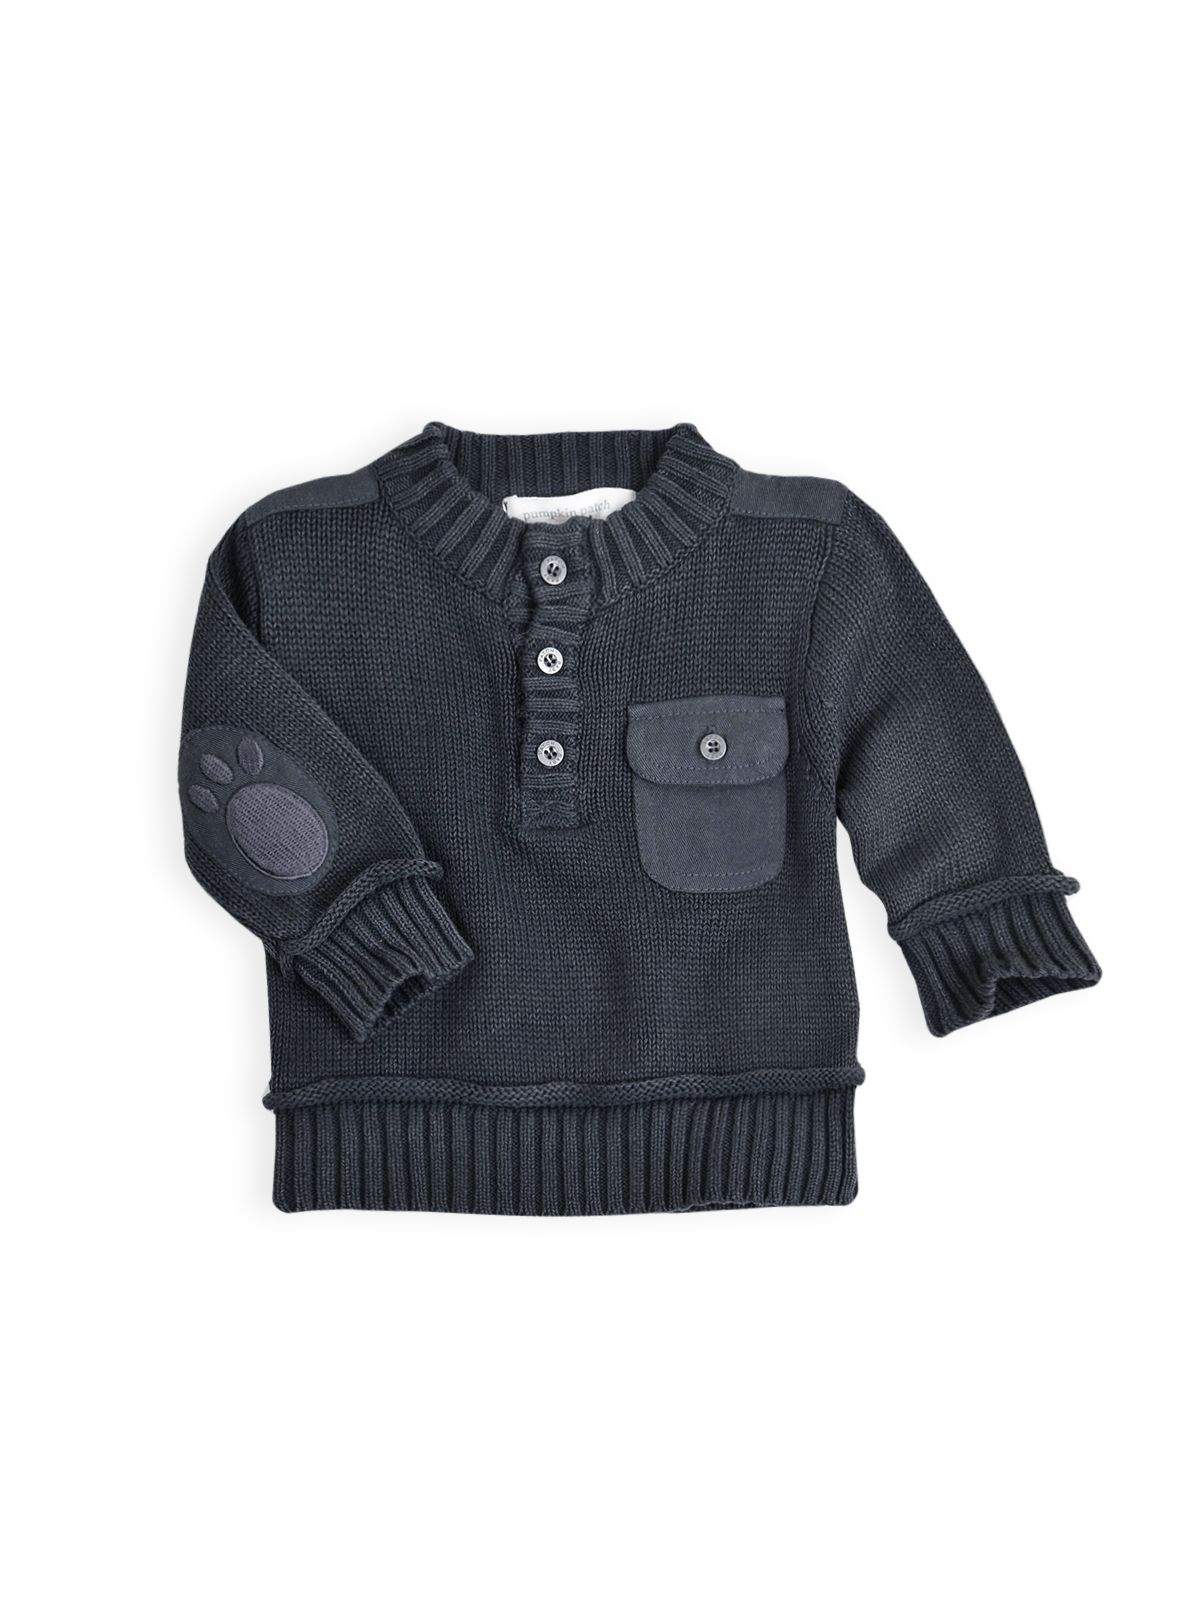 Boys military jumper